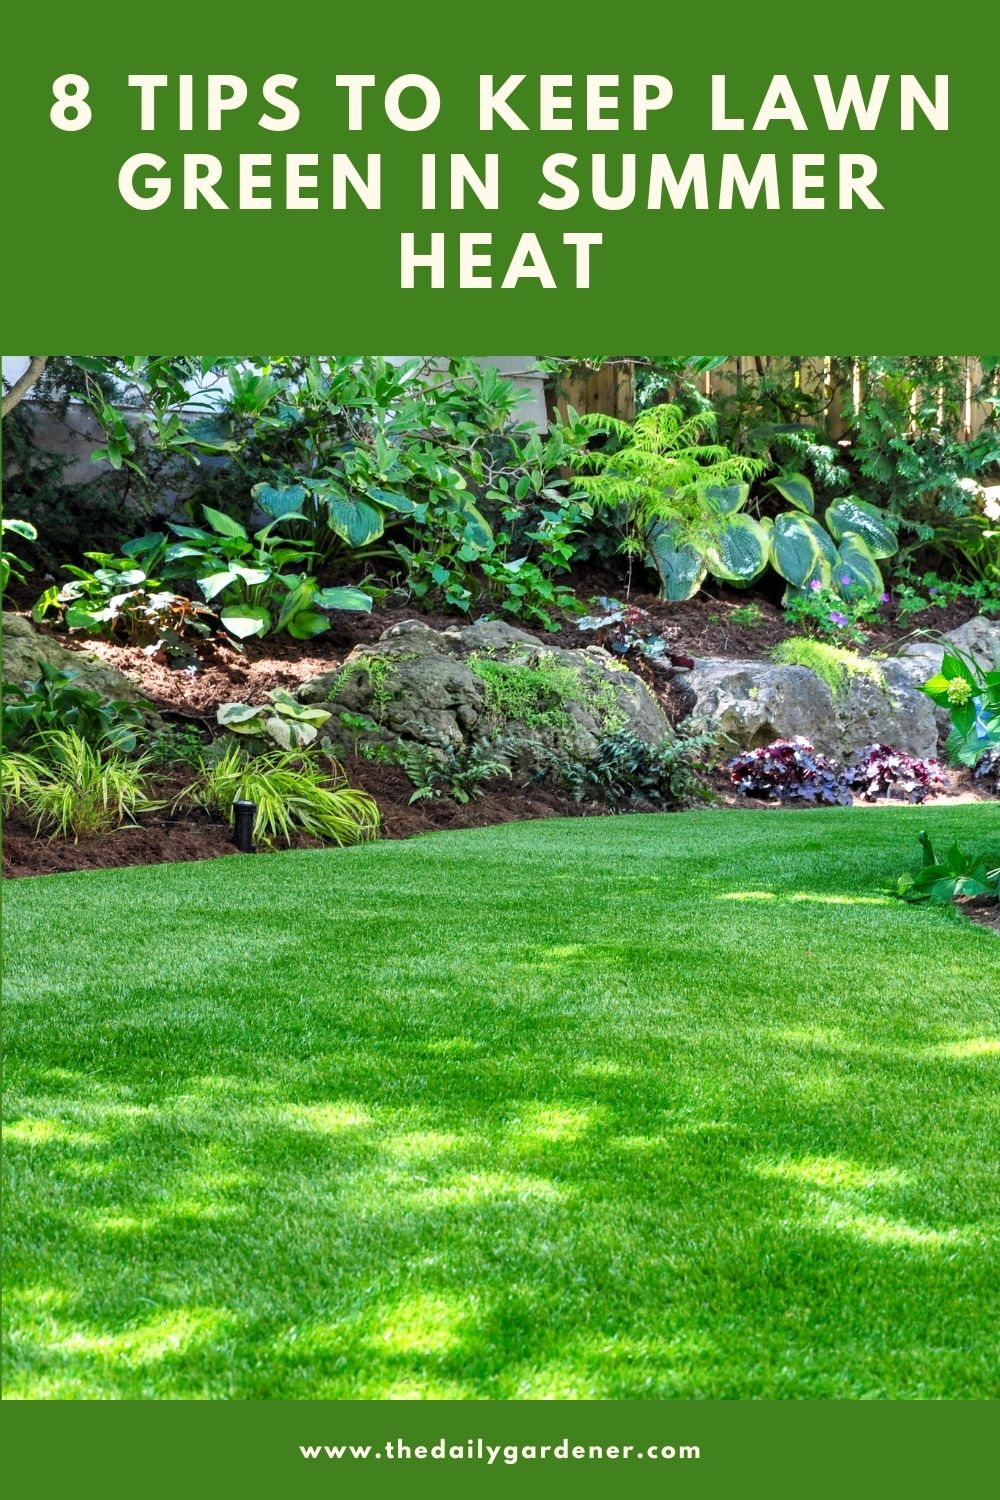 8 Tips to Keep Lawn Green in Summer Heat 2